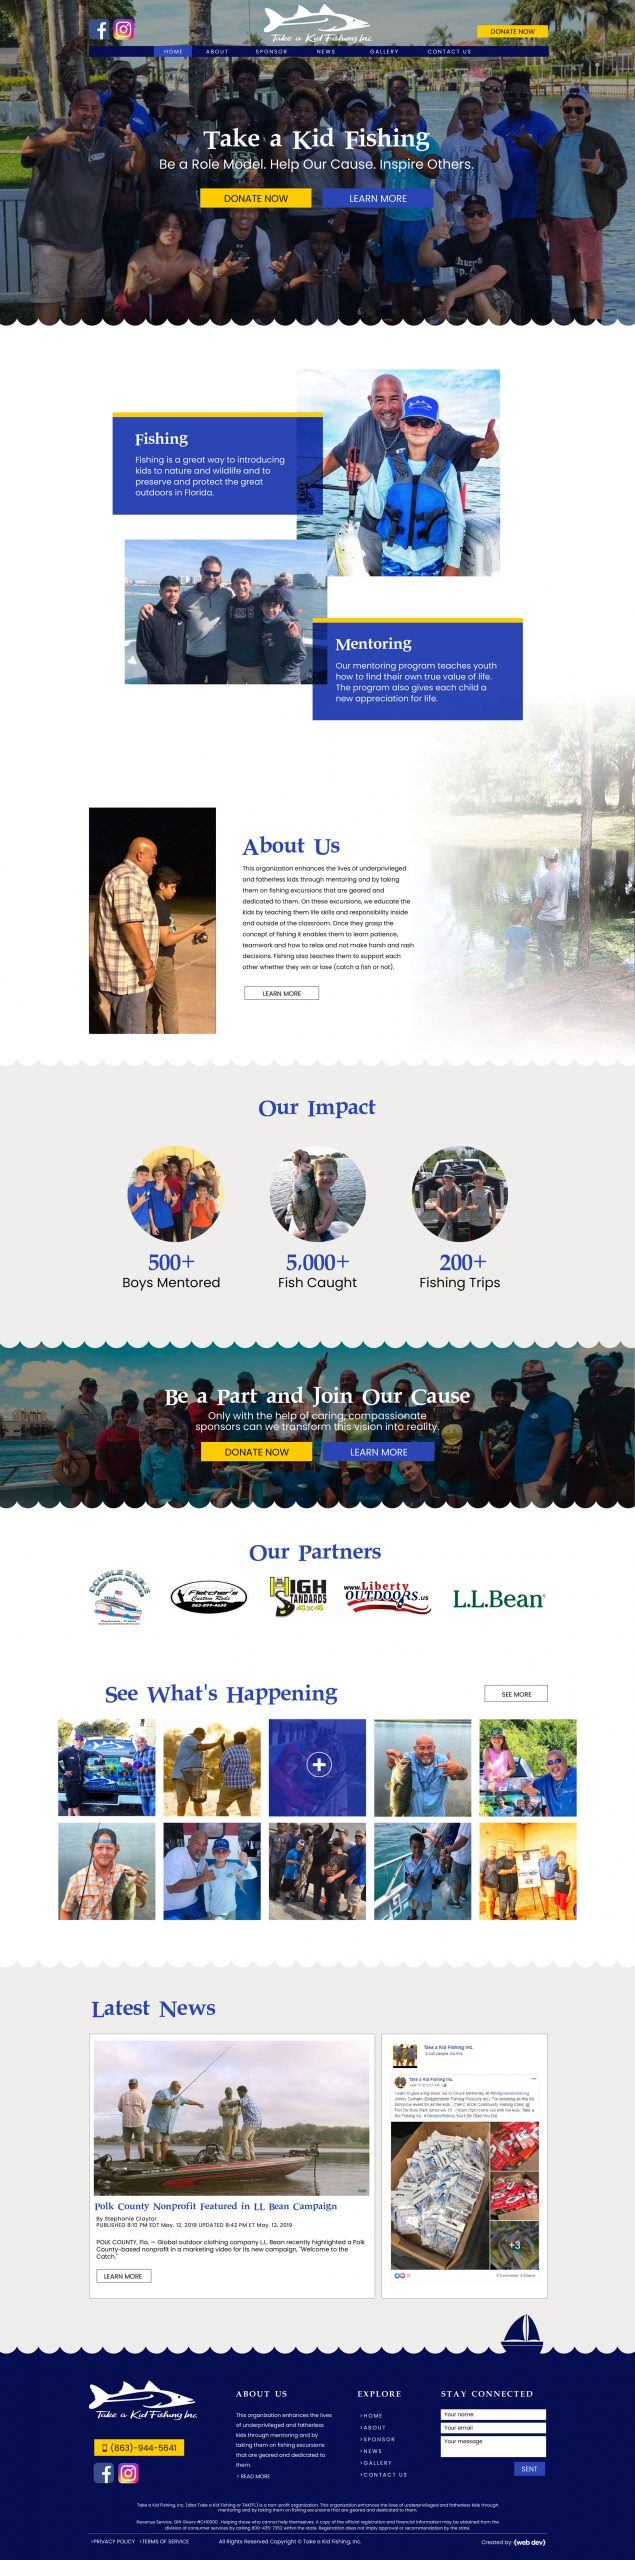 Website design for non-profit organisations